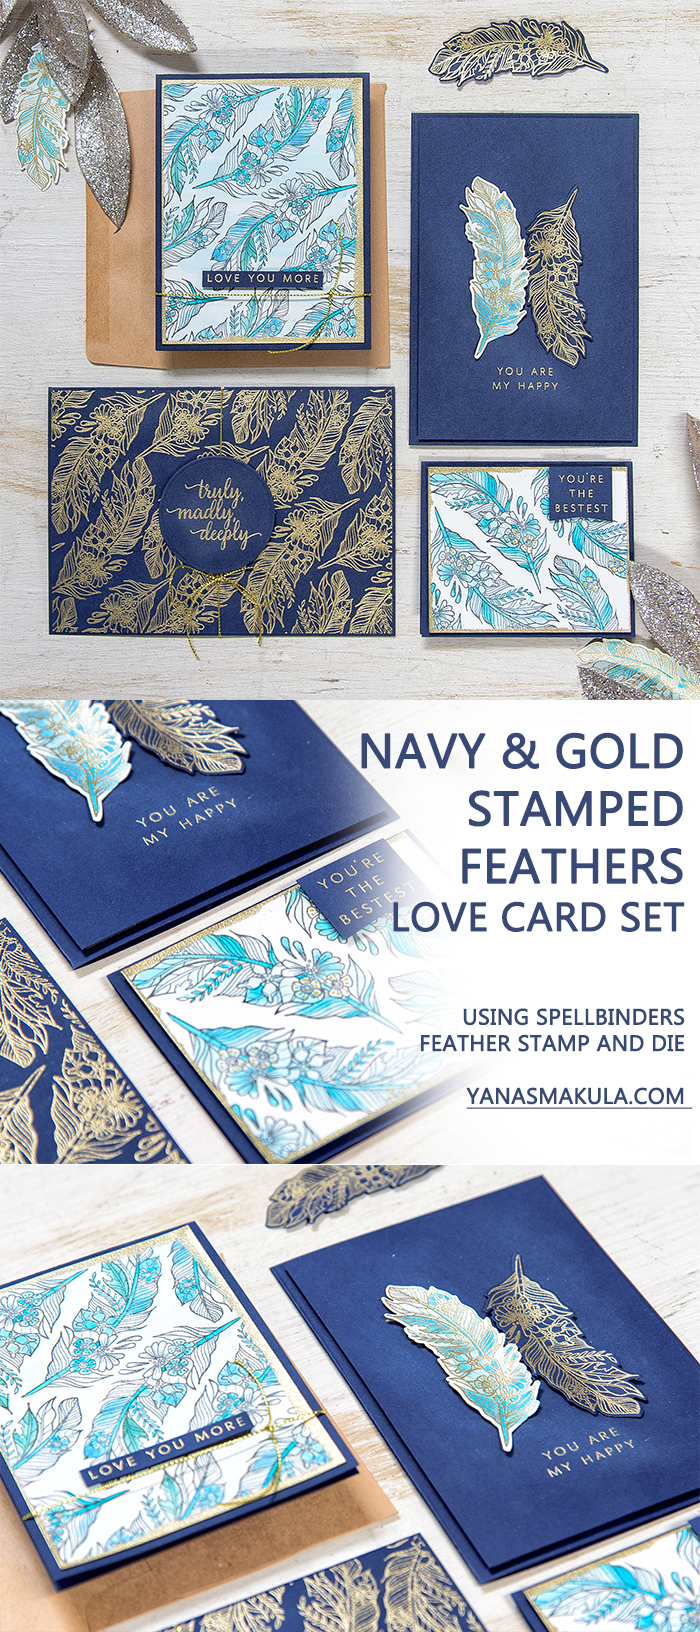 Navy & Gold Stamped Feathers Love Card Set